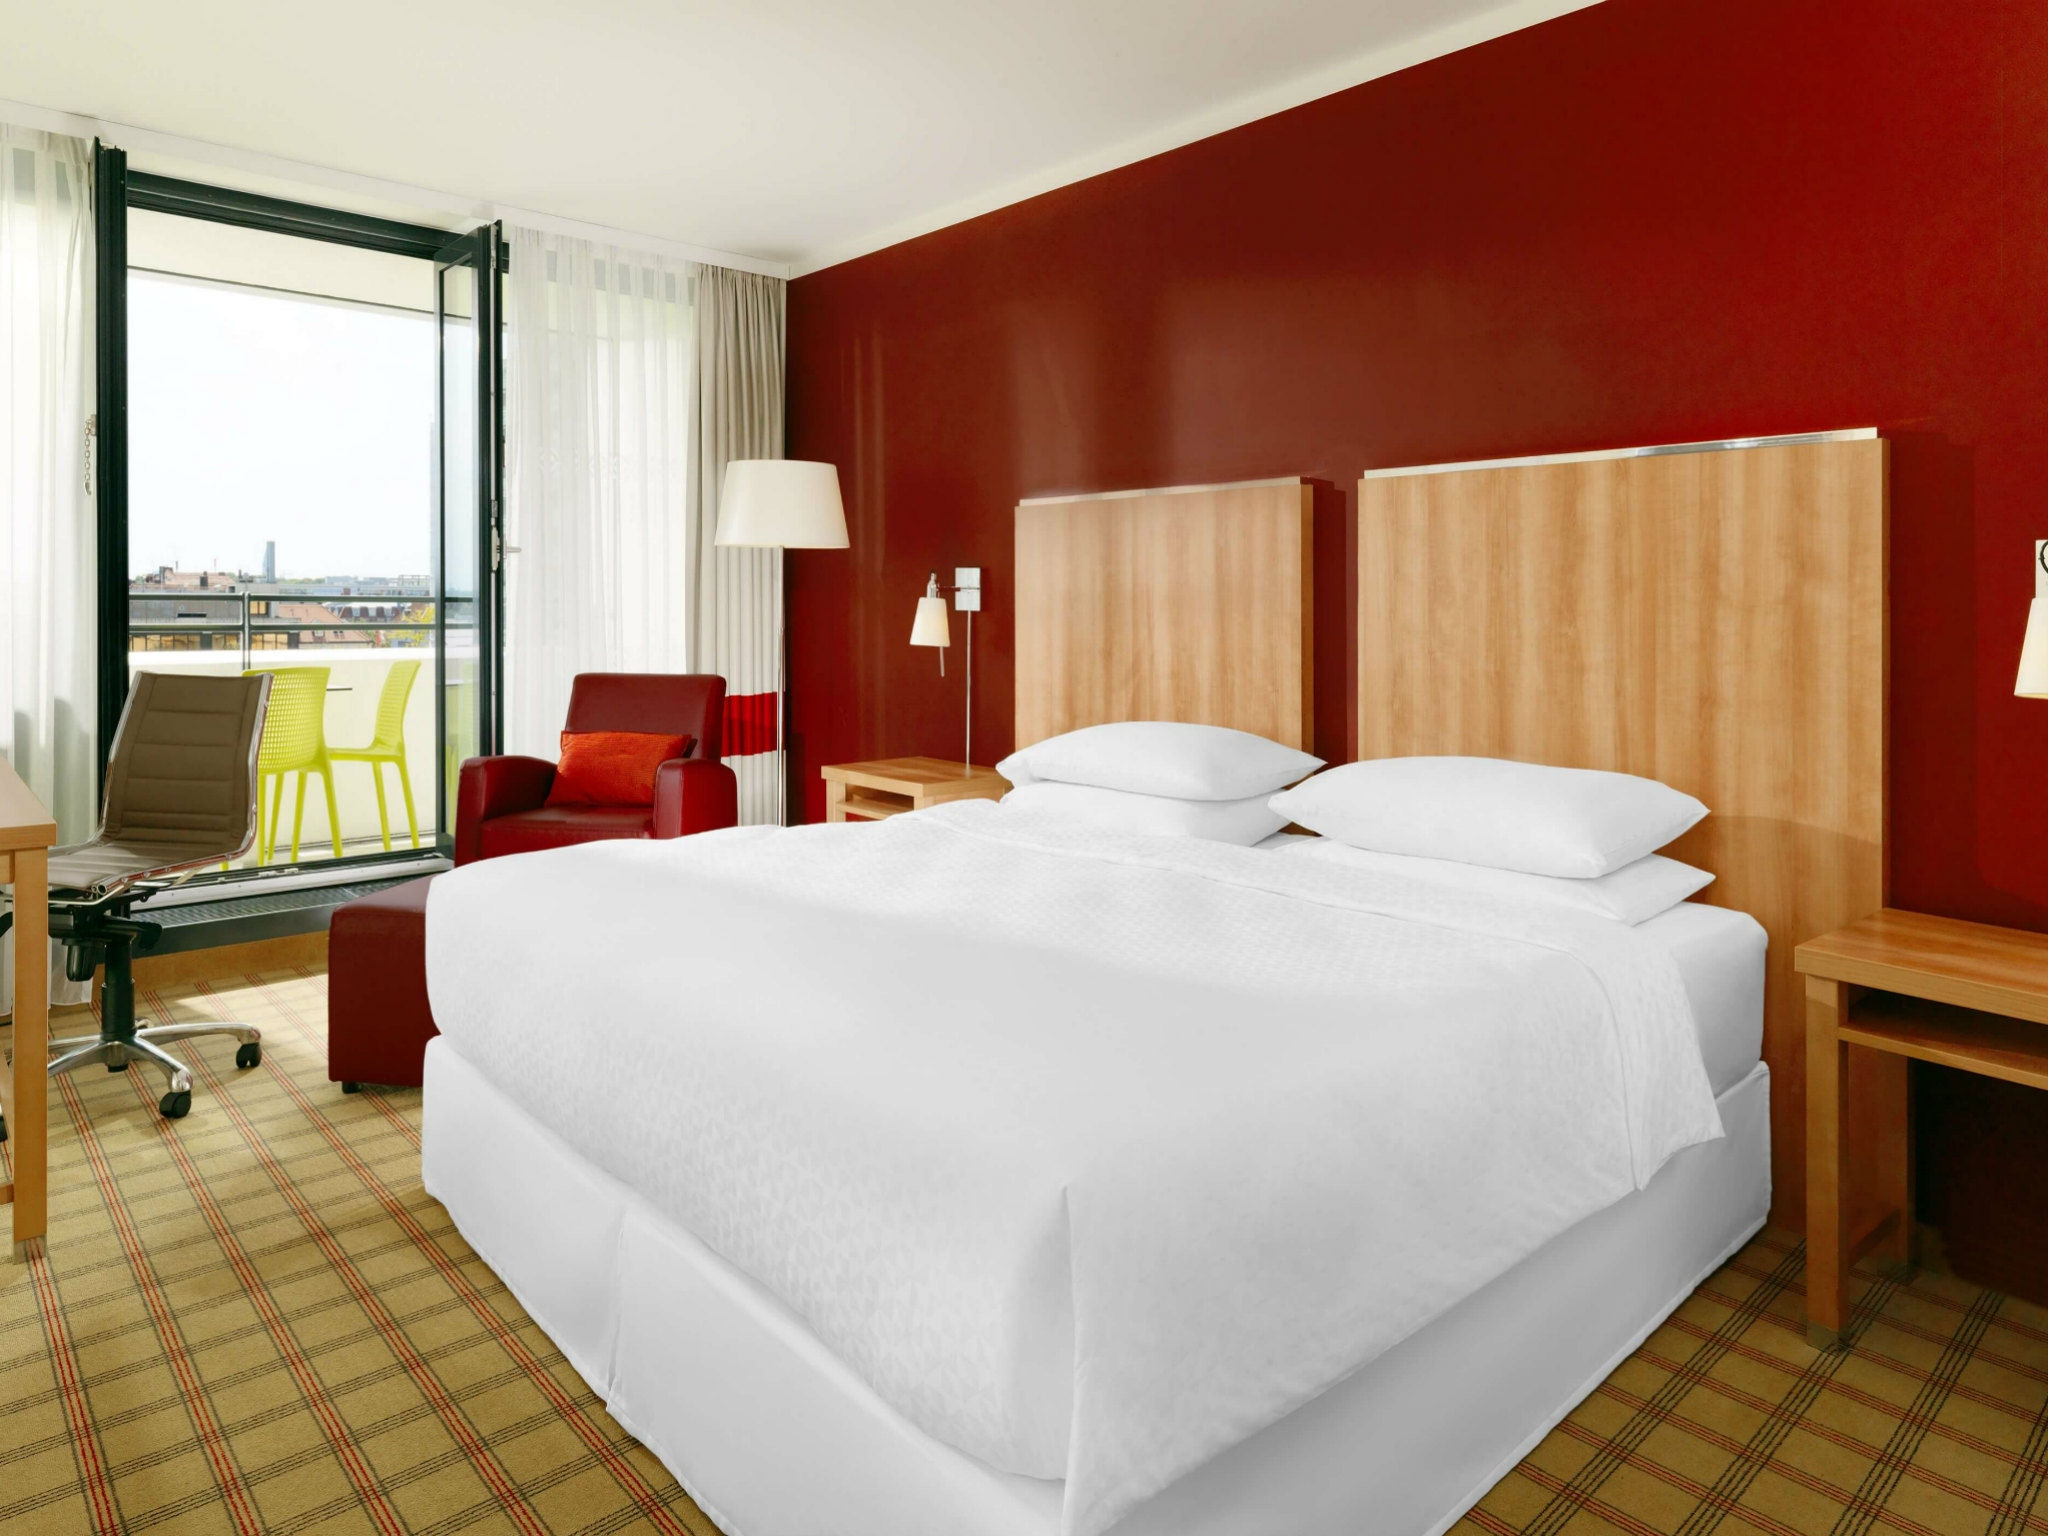 Executive Hotelzimmer München - Four Points by Sheraton München Central